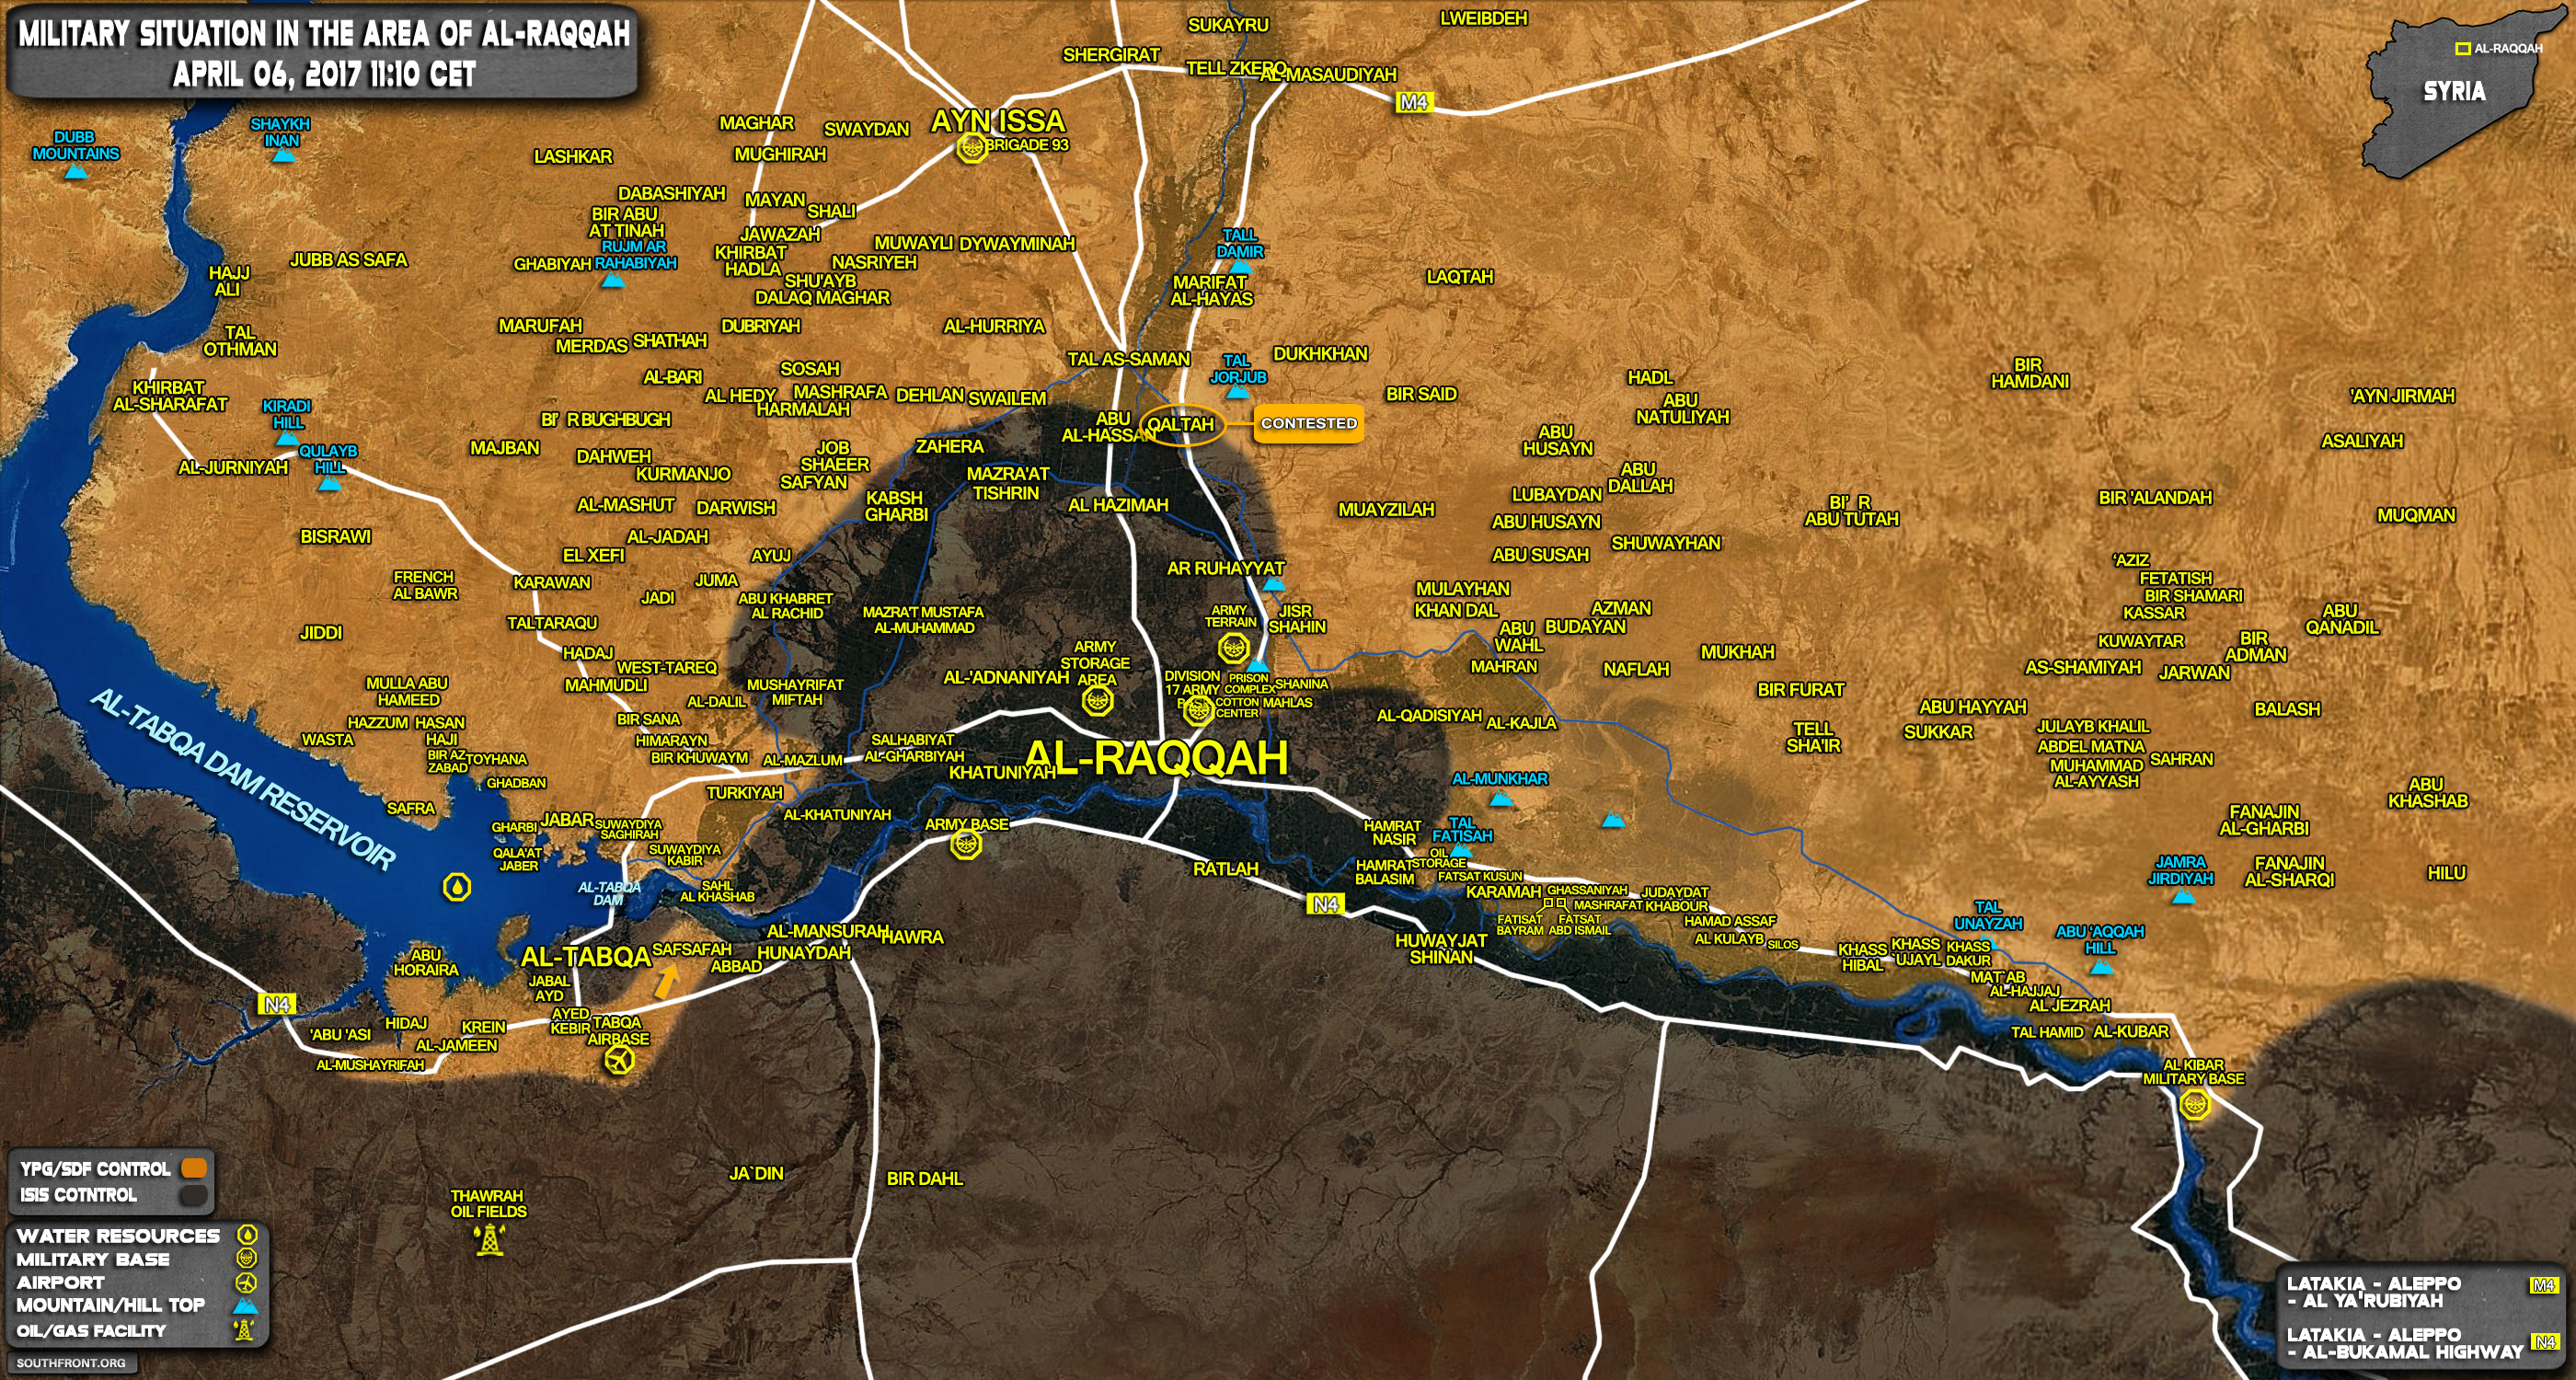 Military Situation In Area Of Raqqah On April 6, 2017 (Syria Map Update)